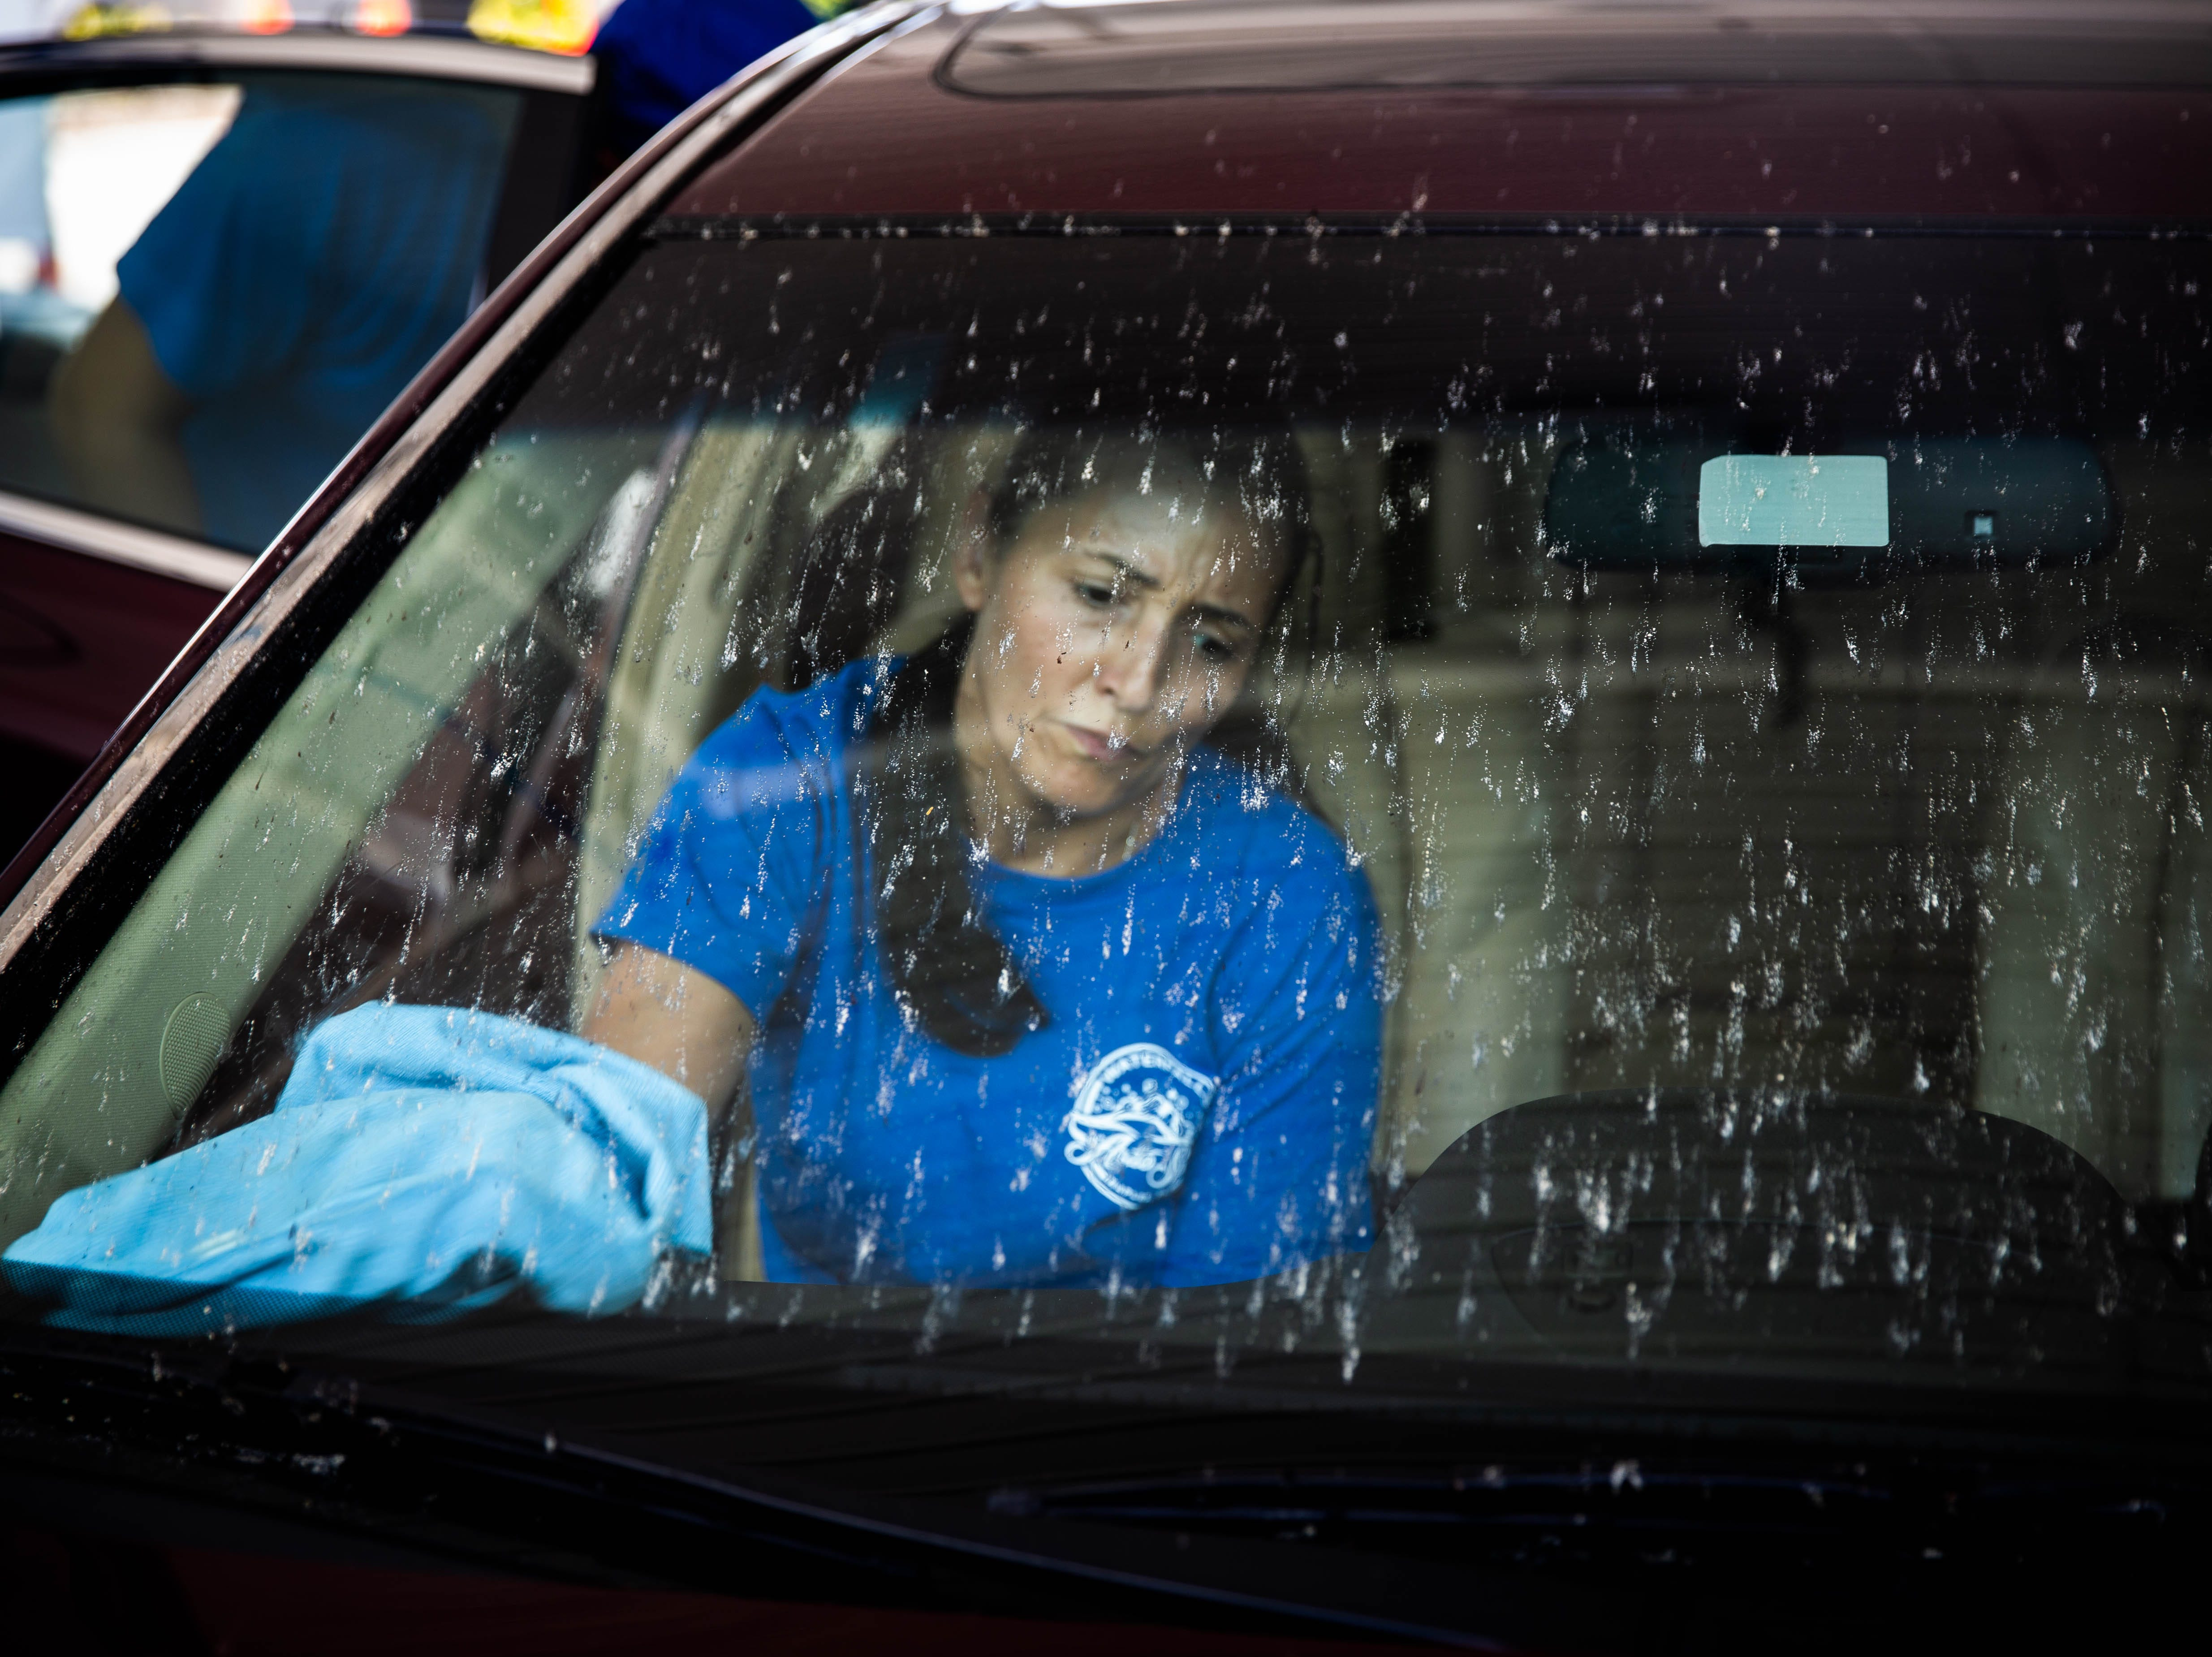 Wendy Vargan cleans lovebugs off of the windshield of a car at the Auto Spa in Naples on Friday, May 10, 2019.